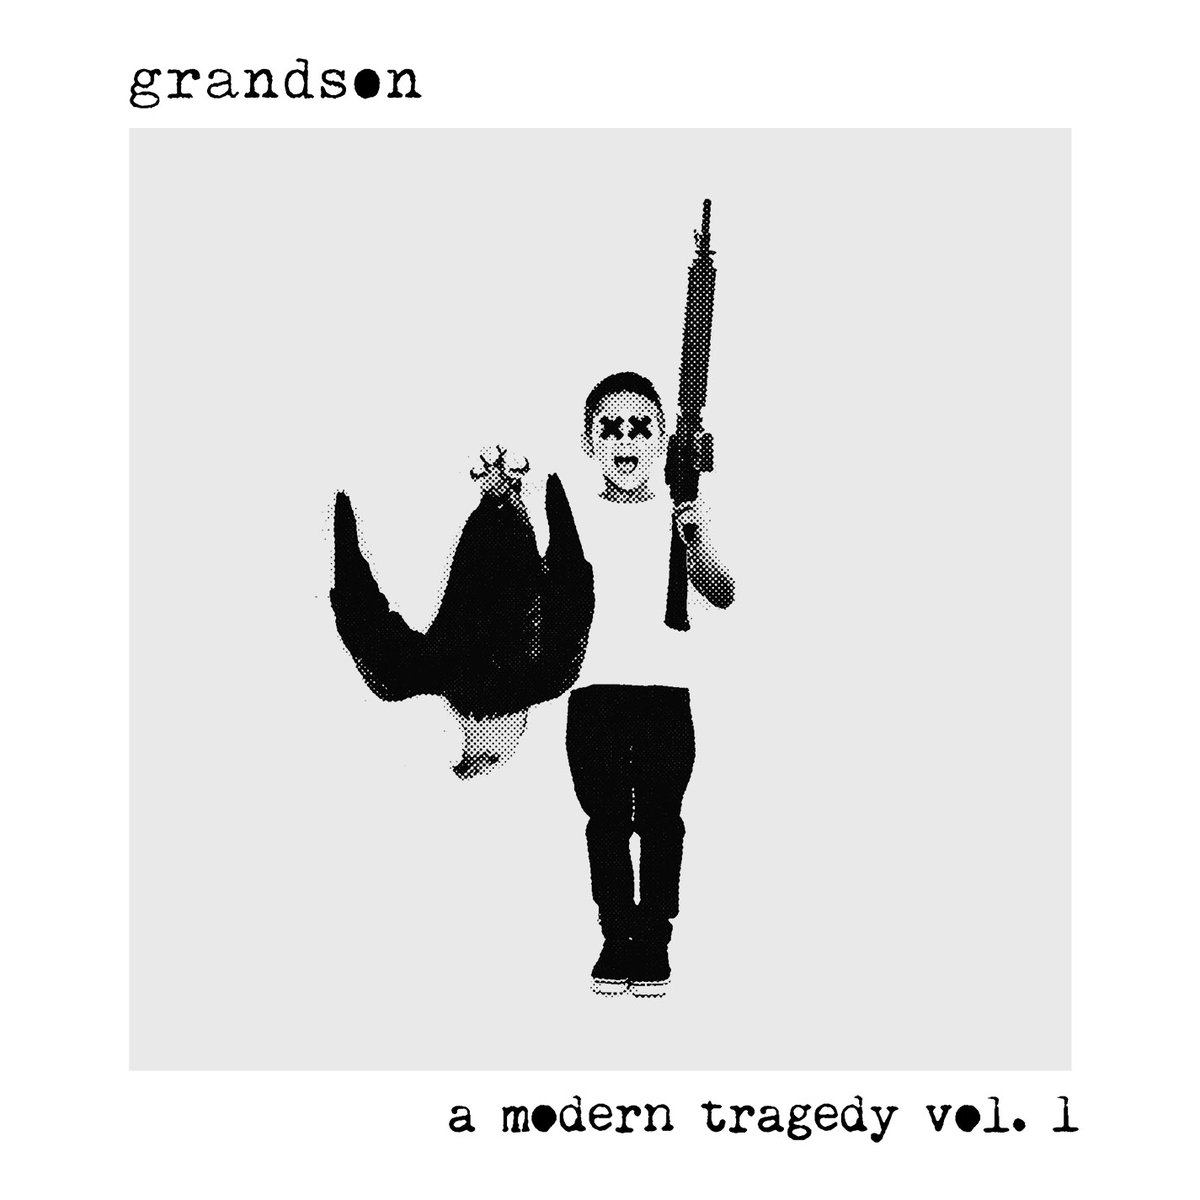 Grandson: 'A Modern Tragedy Vol. 1'